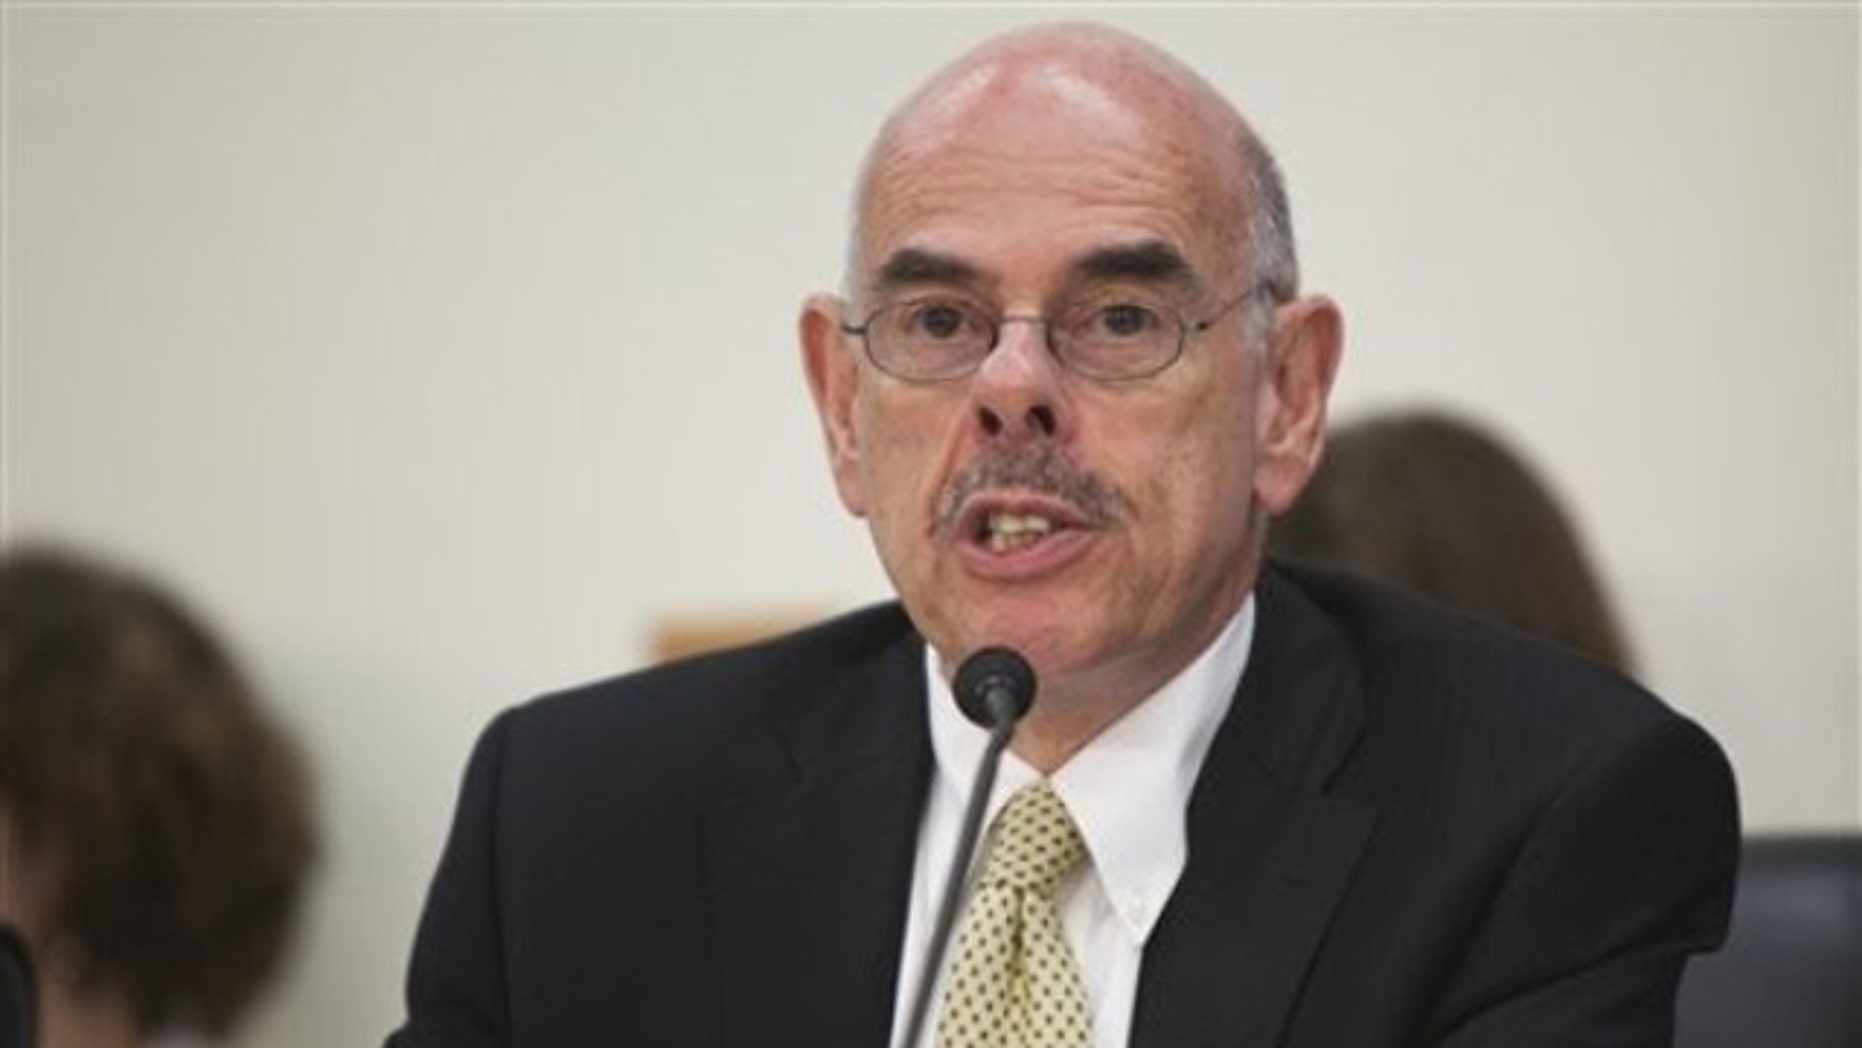 In this May 6, 2010, file photo, Rep. Henry Waxman speaks on Capitol Hill in Washington.